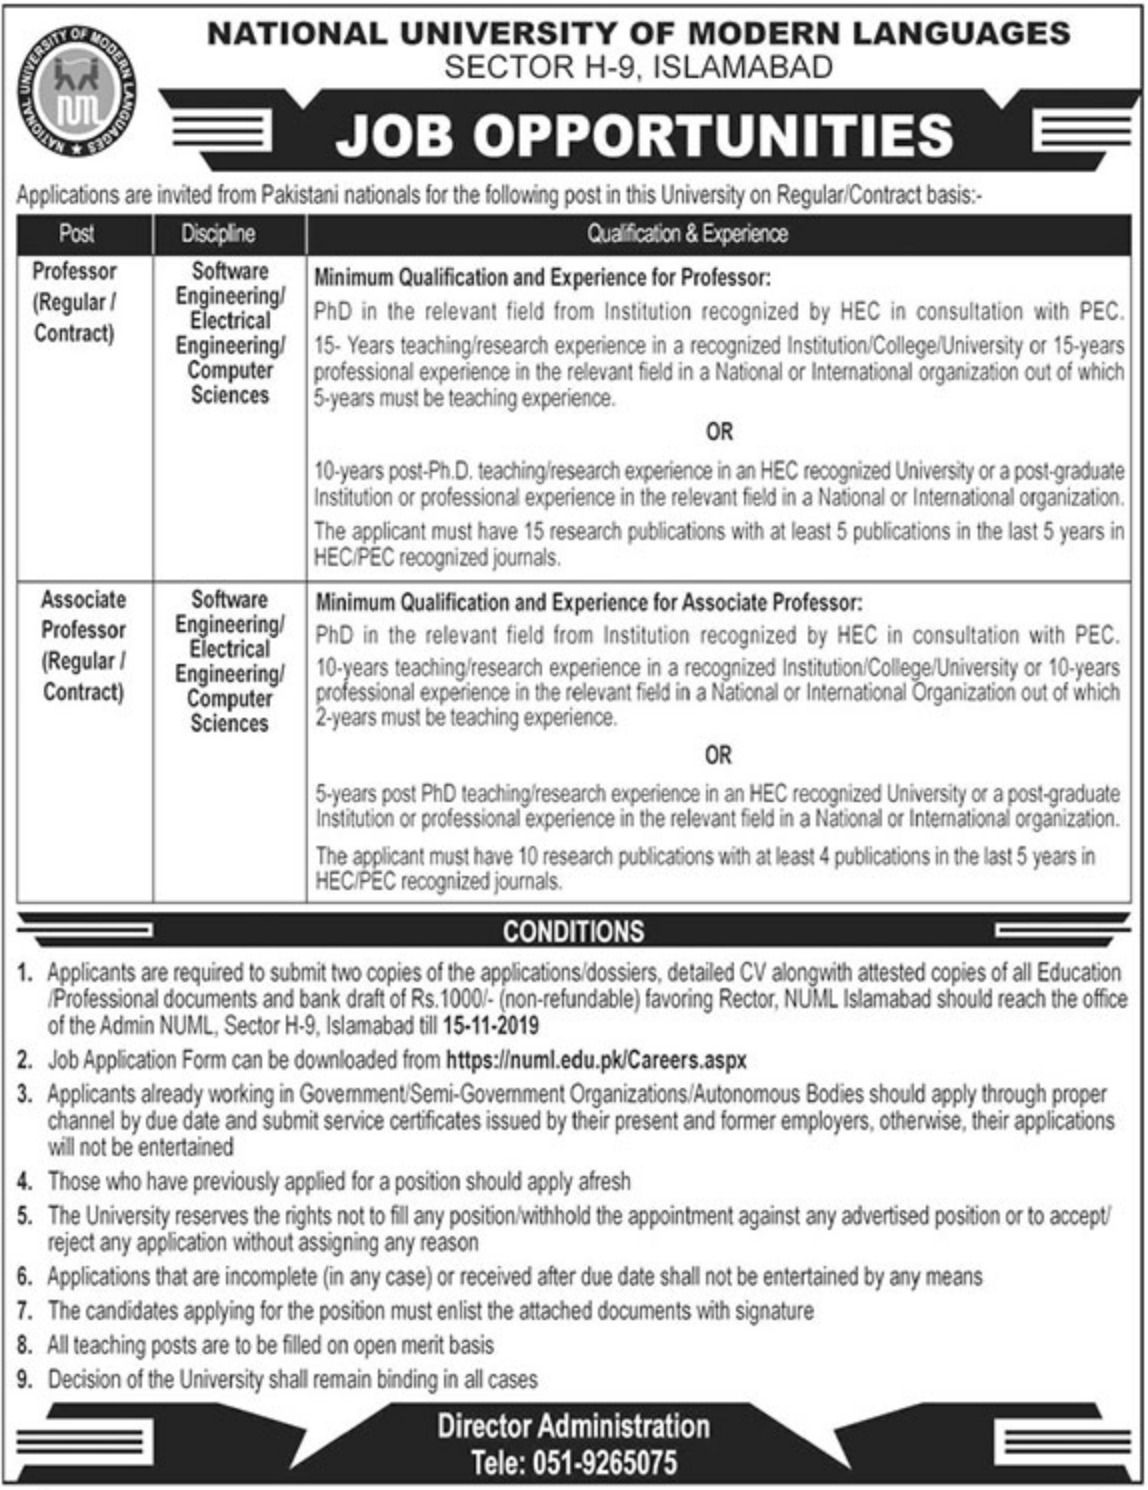 National University of Modern Languages NUML Jobs 2019 Application Form